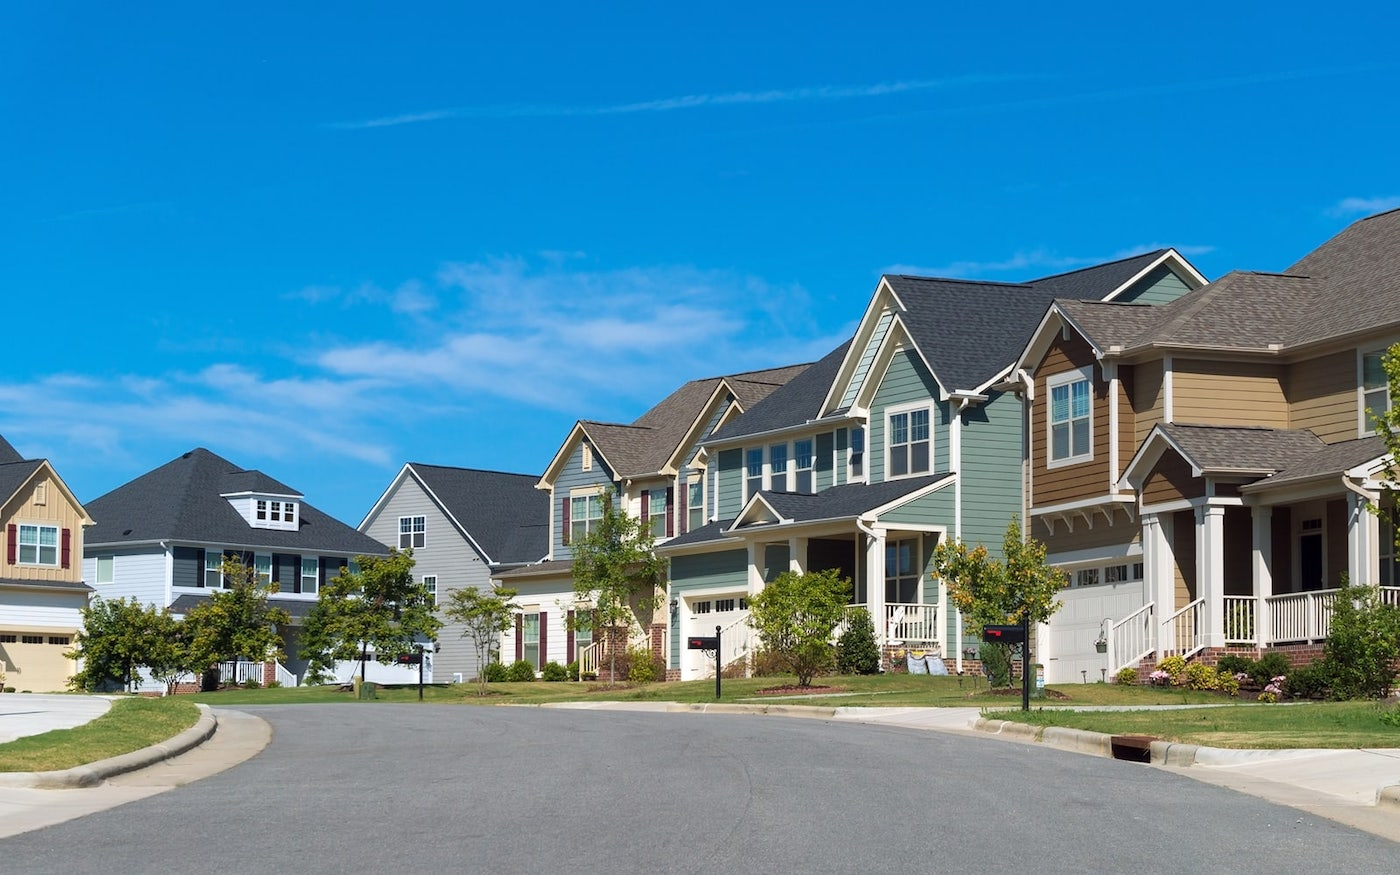 How To Get The Maximum Value When Selling Your Home in Brentwood CA